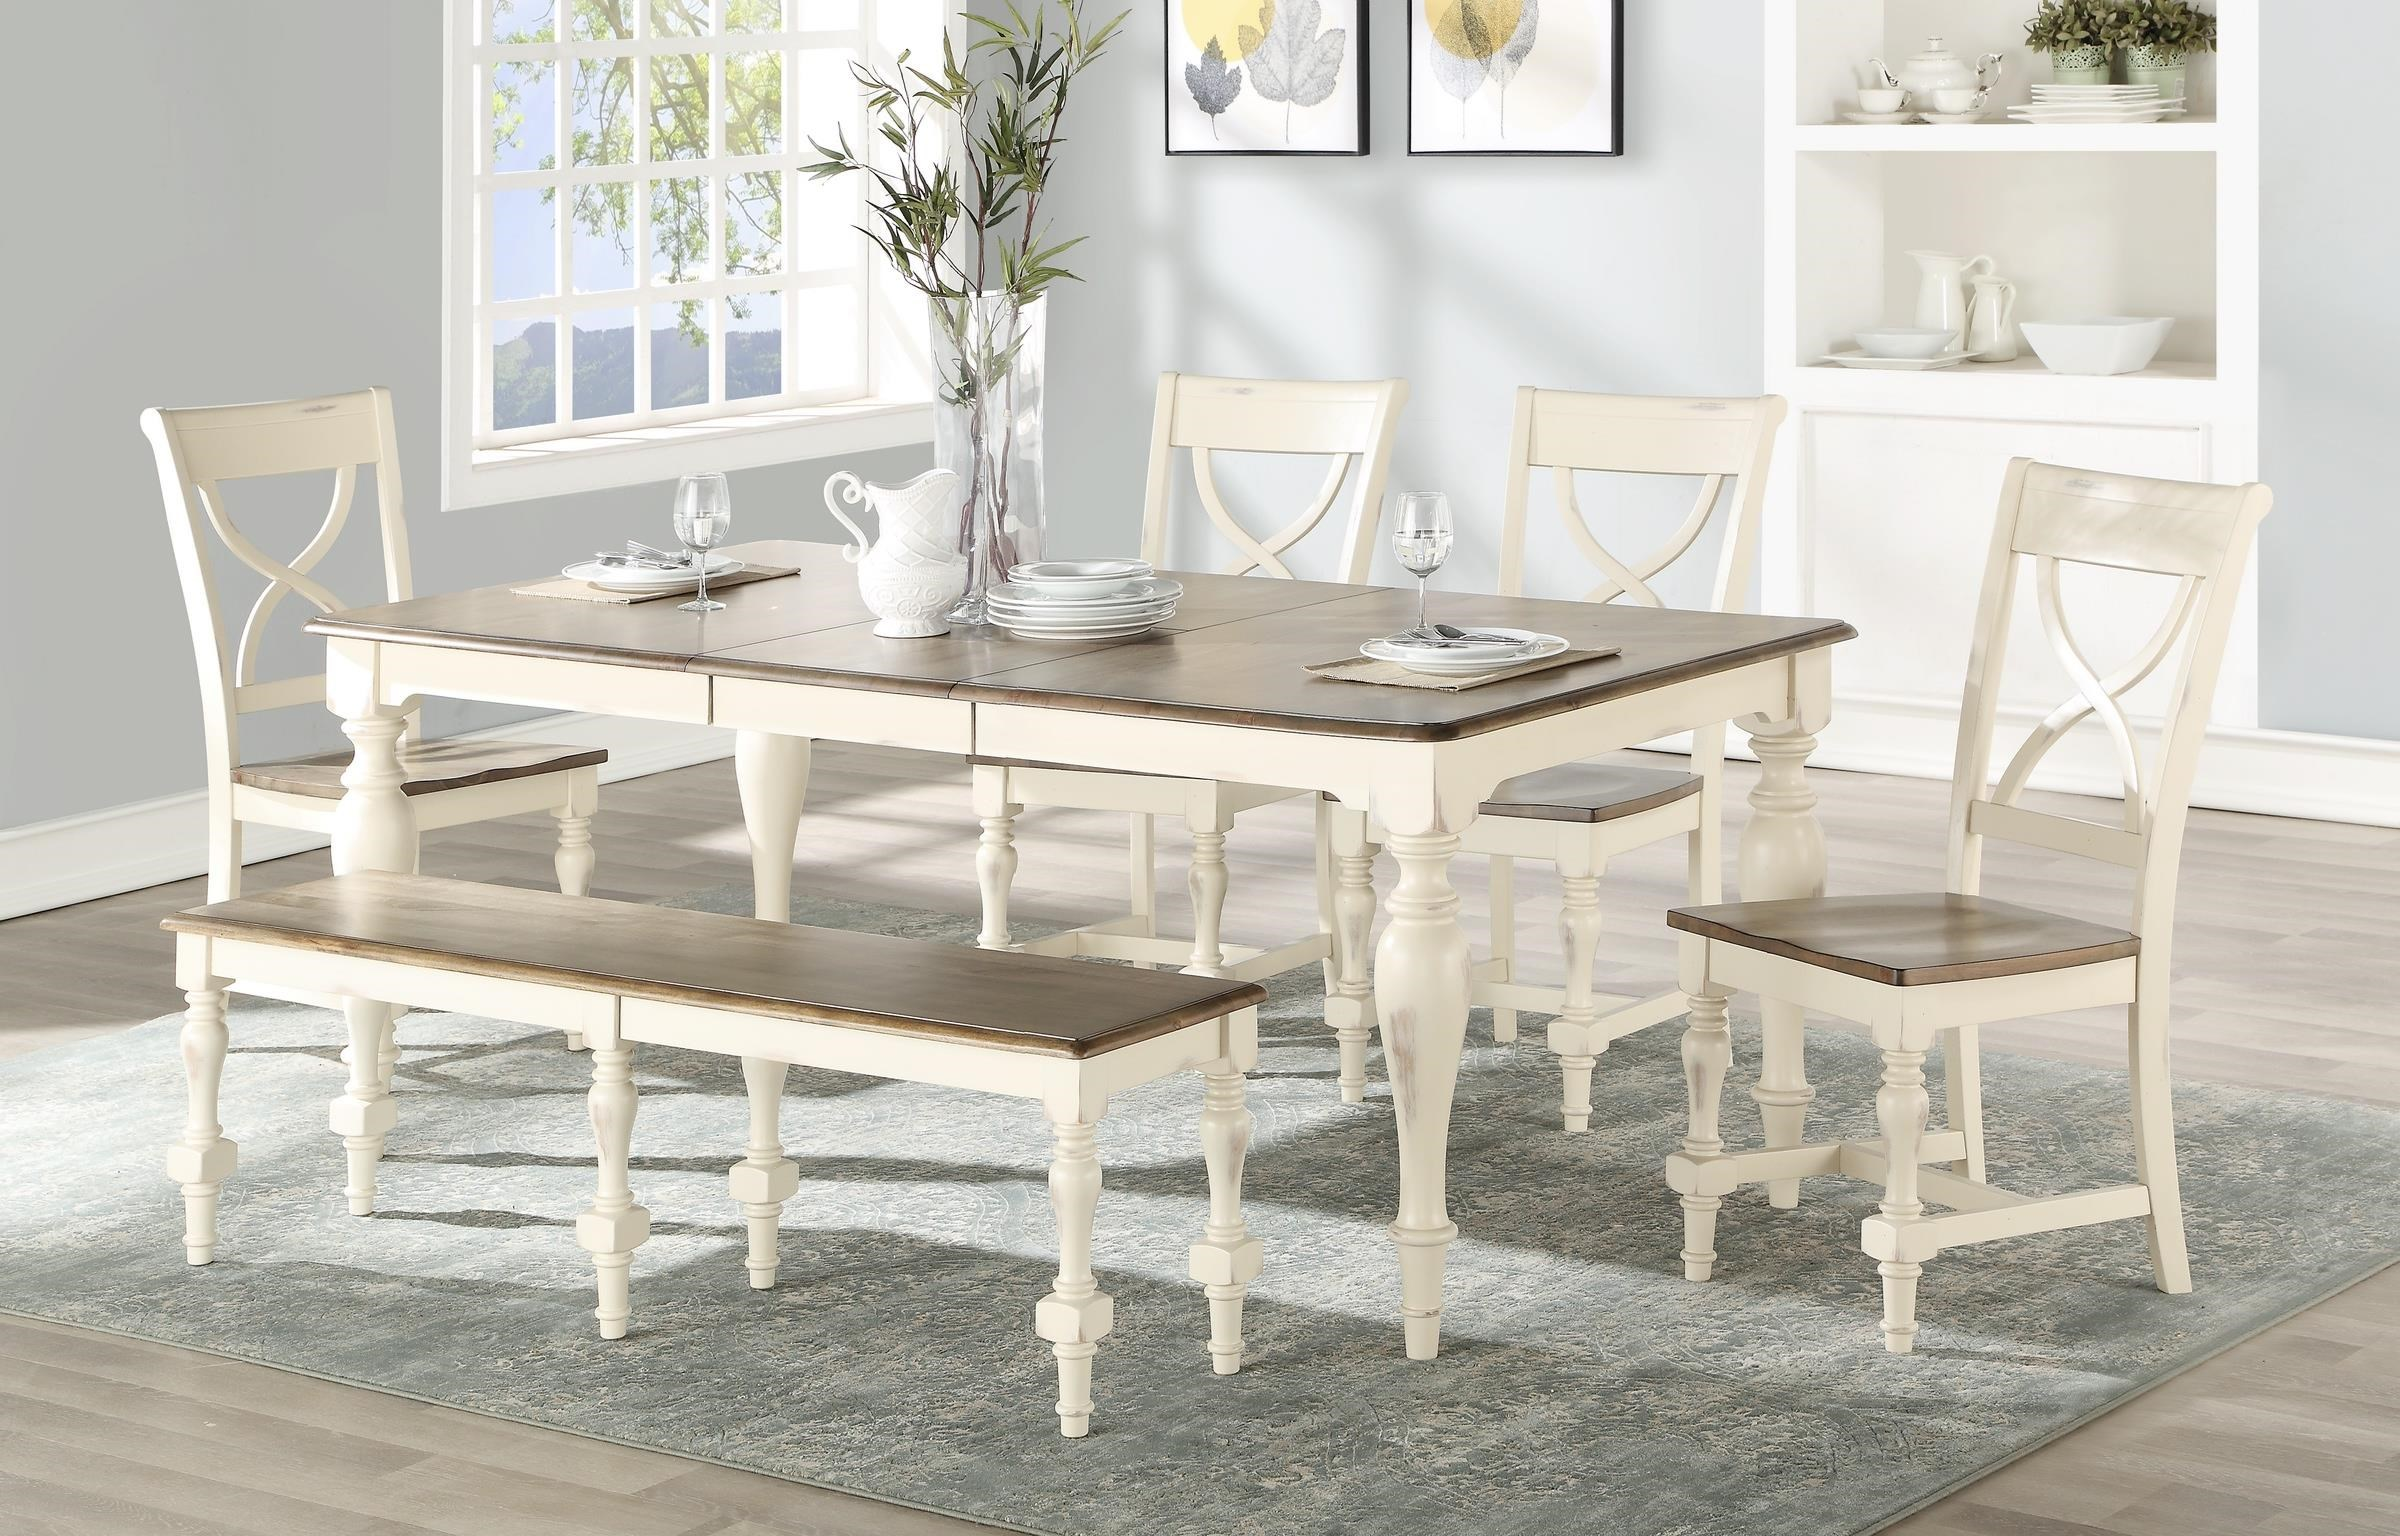 Torrance 6 Pc. Dining Set at Bennett's Furniture and Mattresses